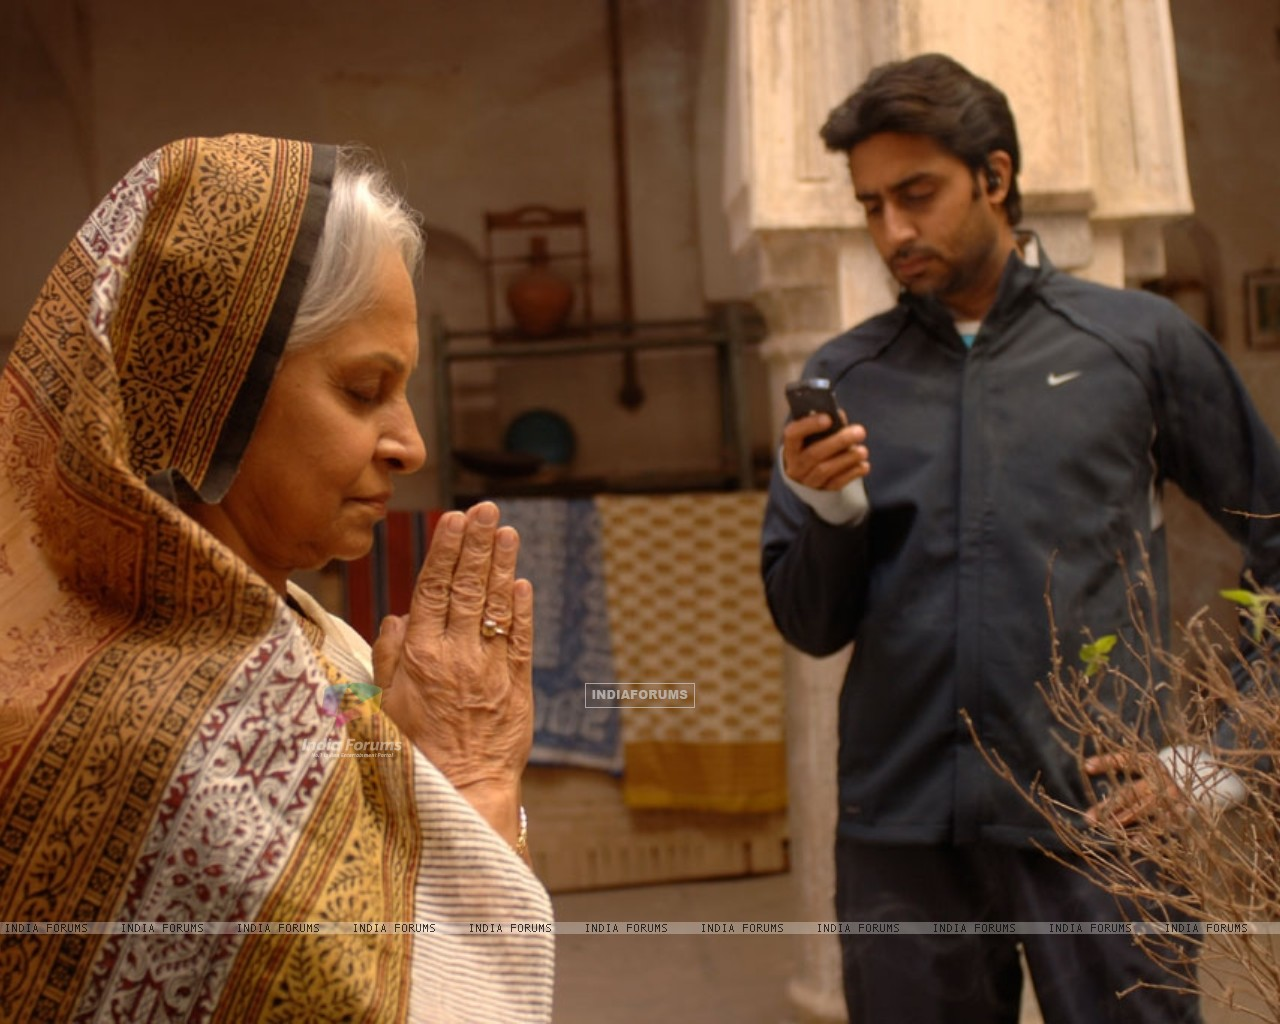 Abhishek Bachchan and Waheeda Rahman in Delhi-6 - Wallpaper (Size:1280x1024)